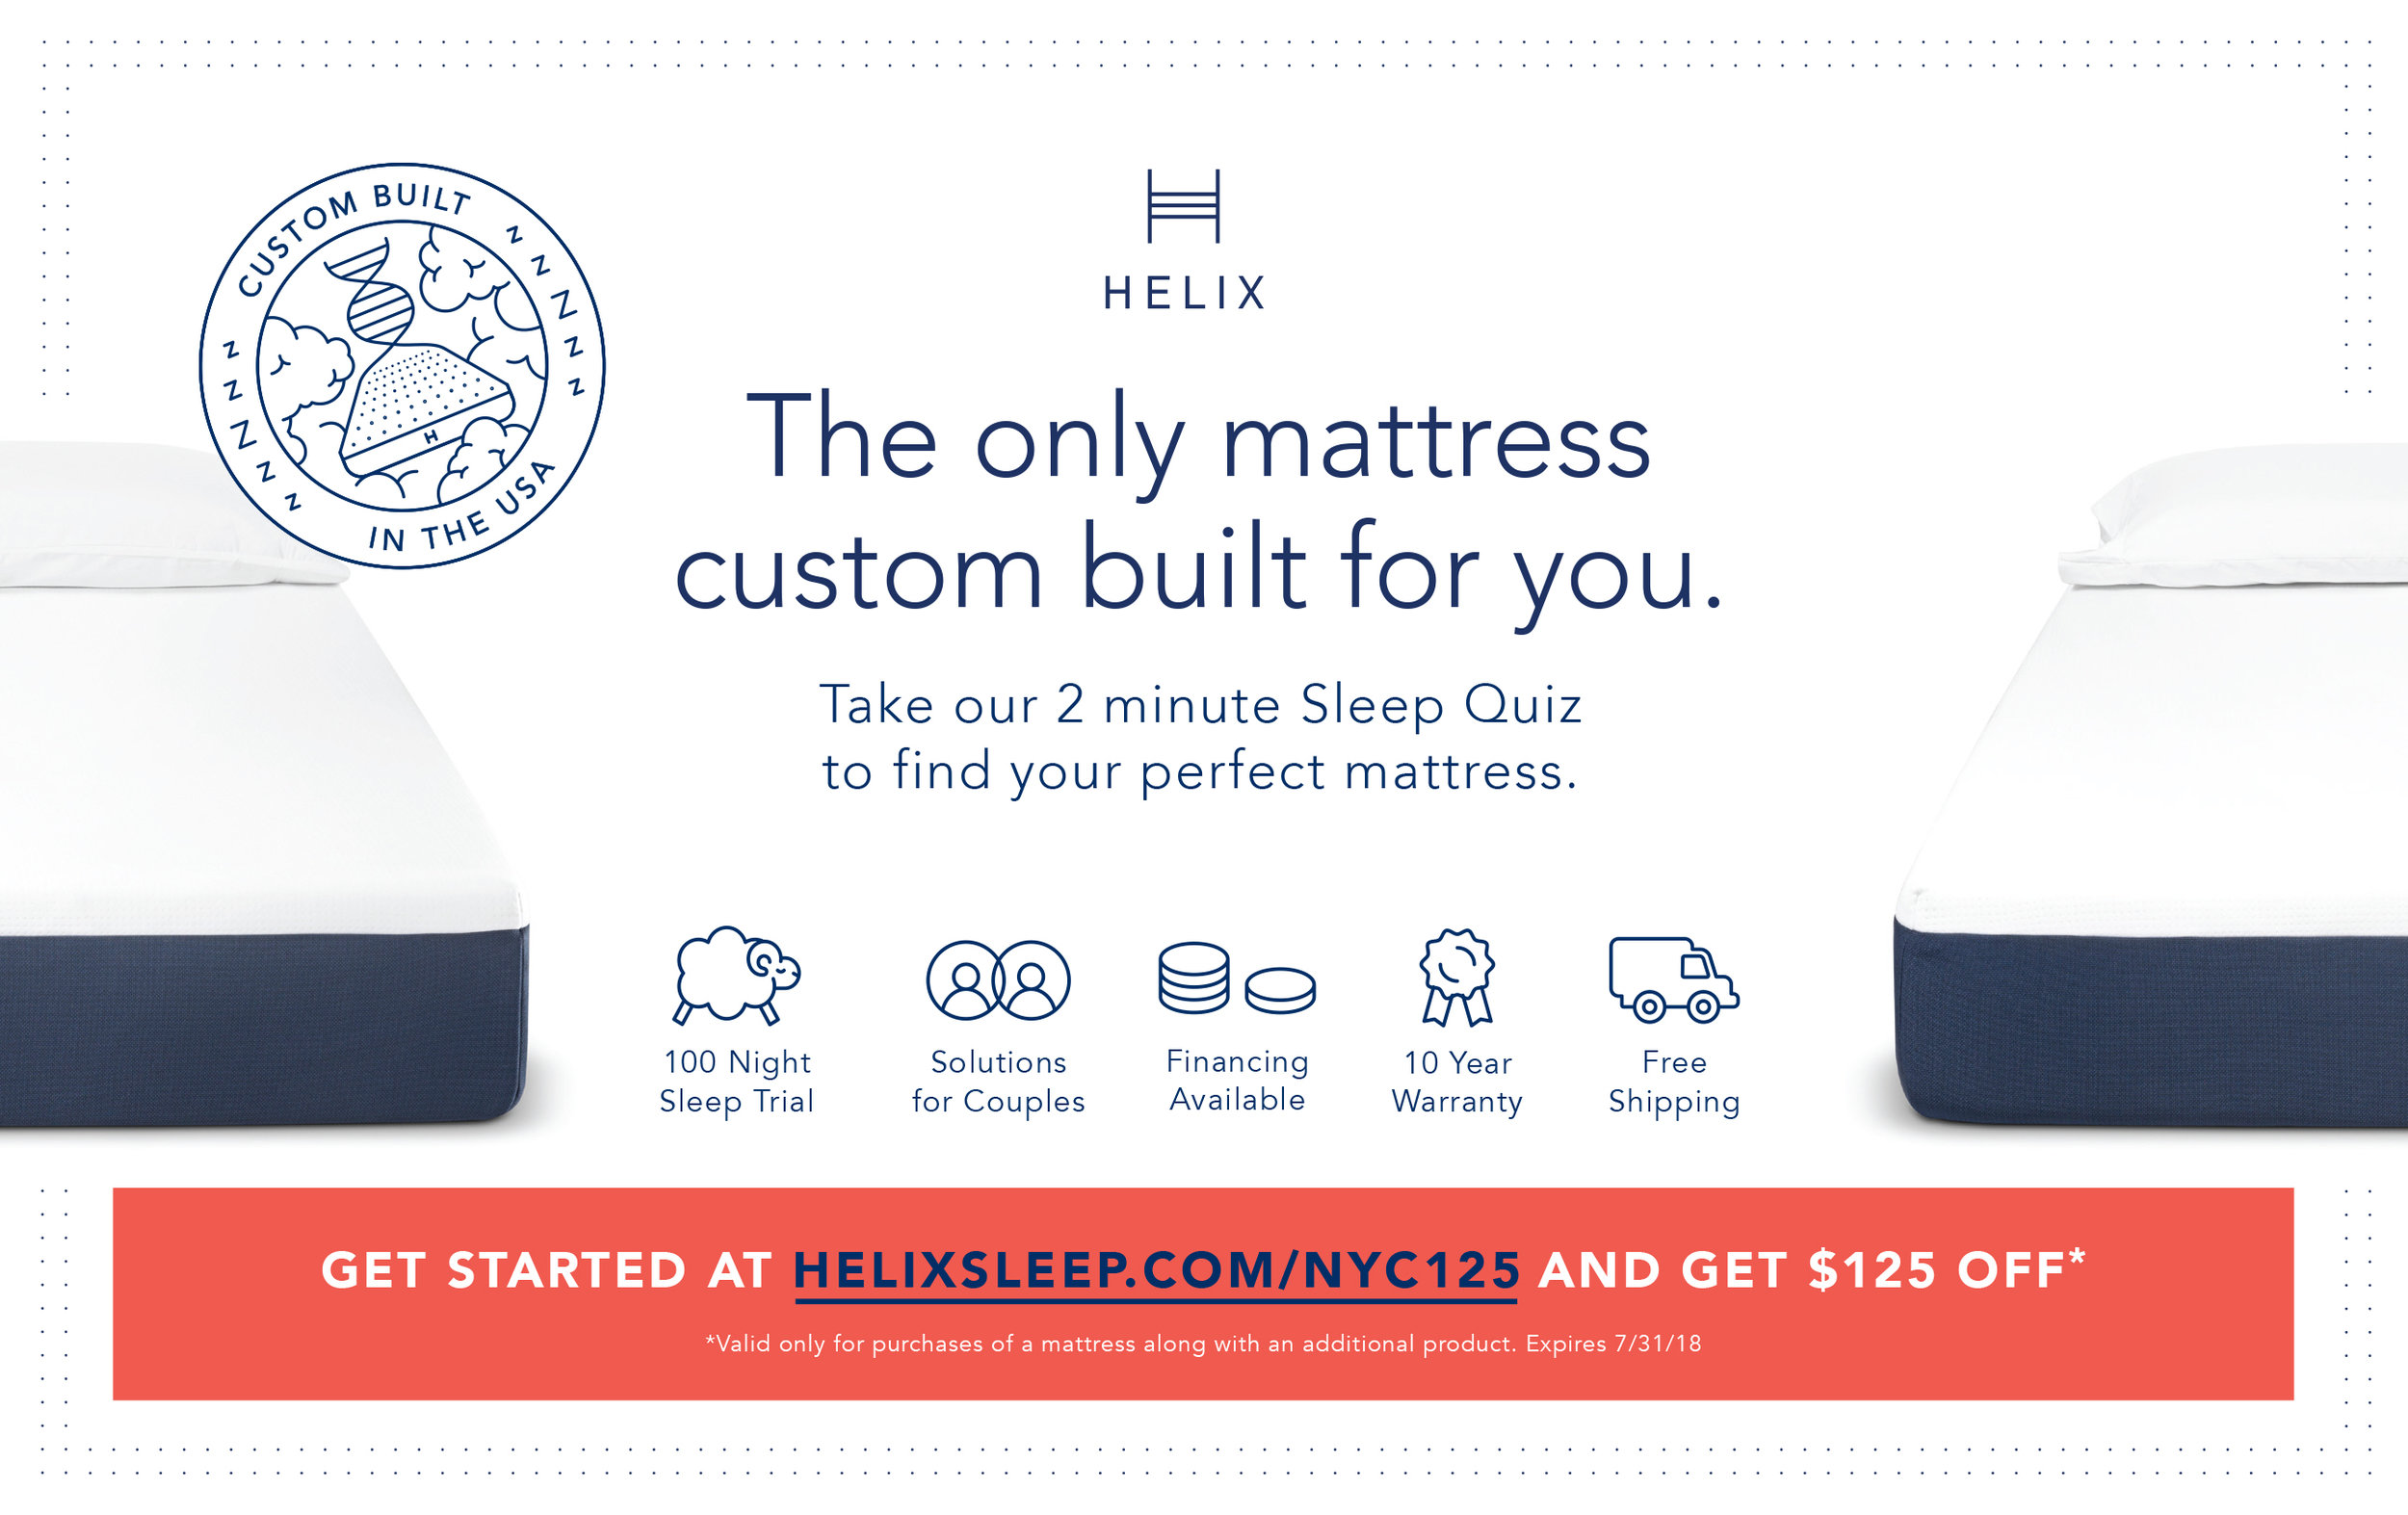 Helix-Acquisition-DirectMail-StampedMedia-20180313-1.jpg